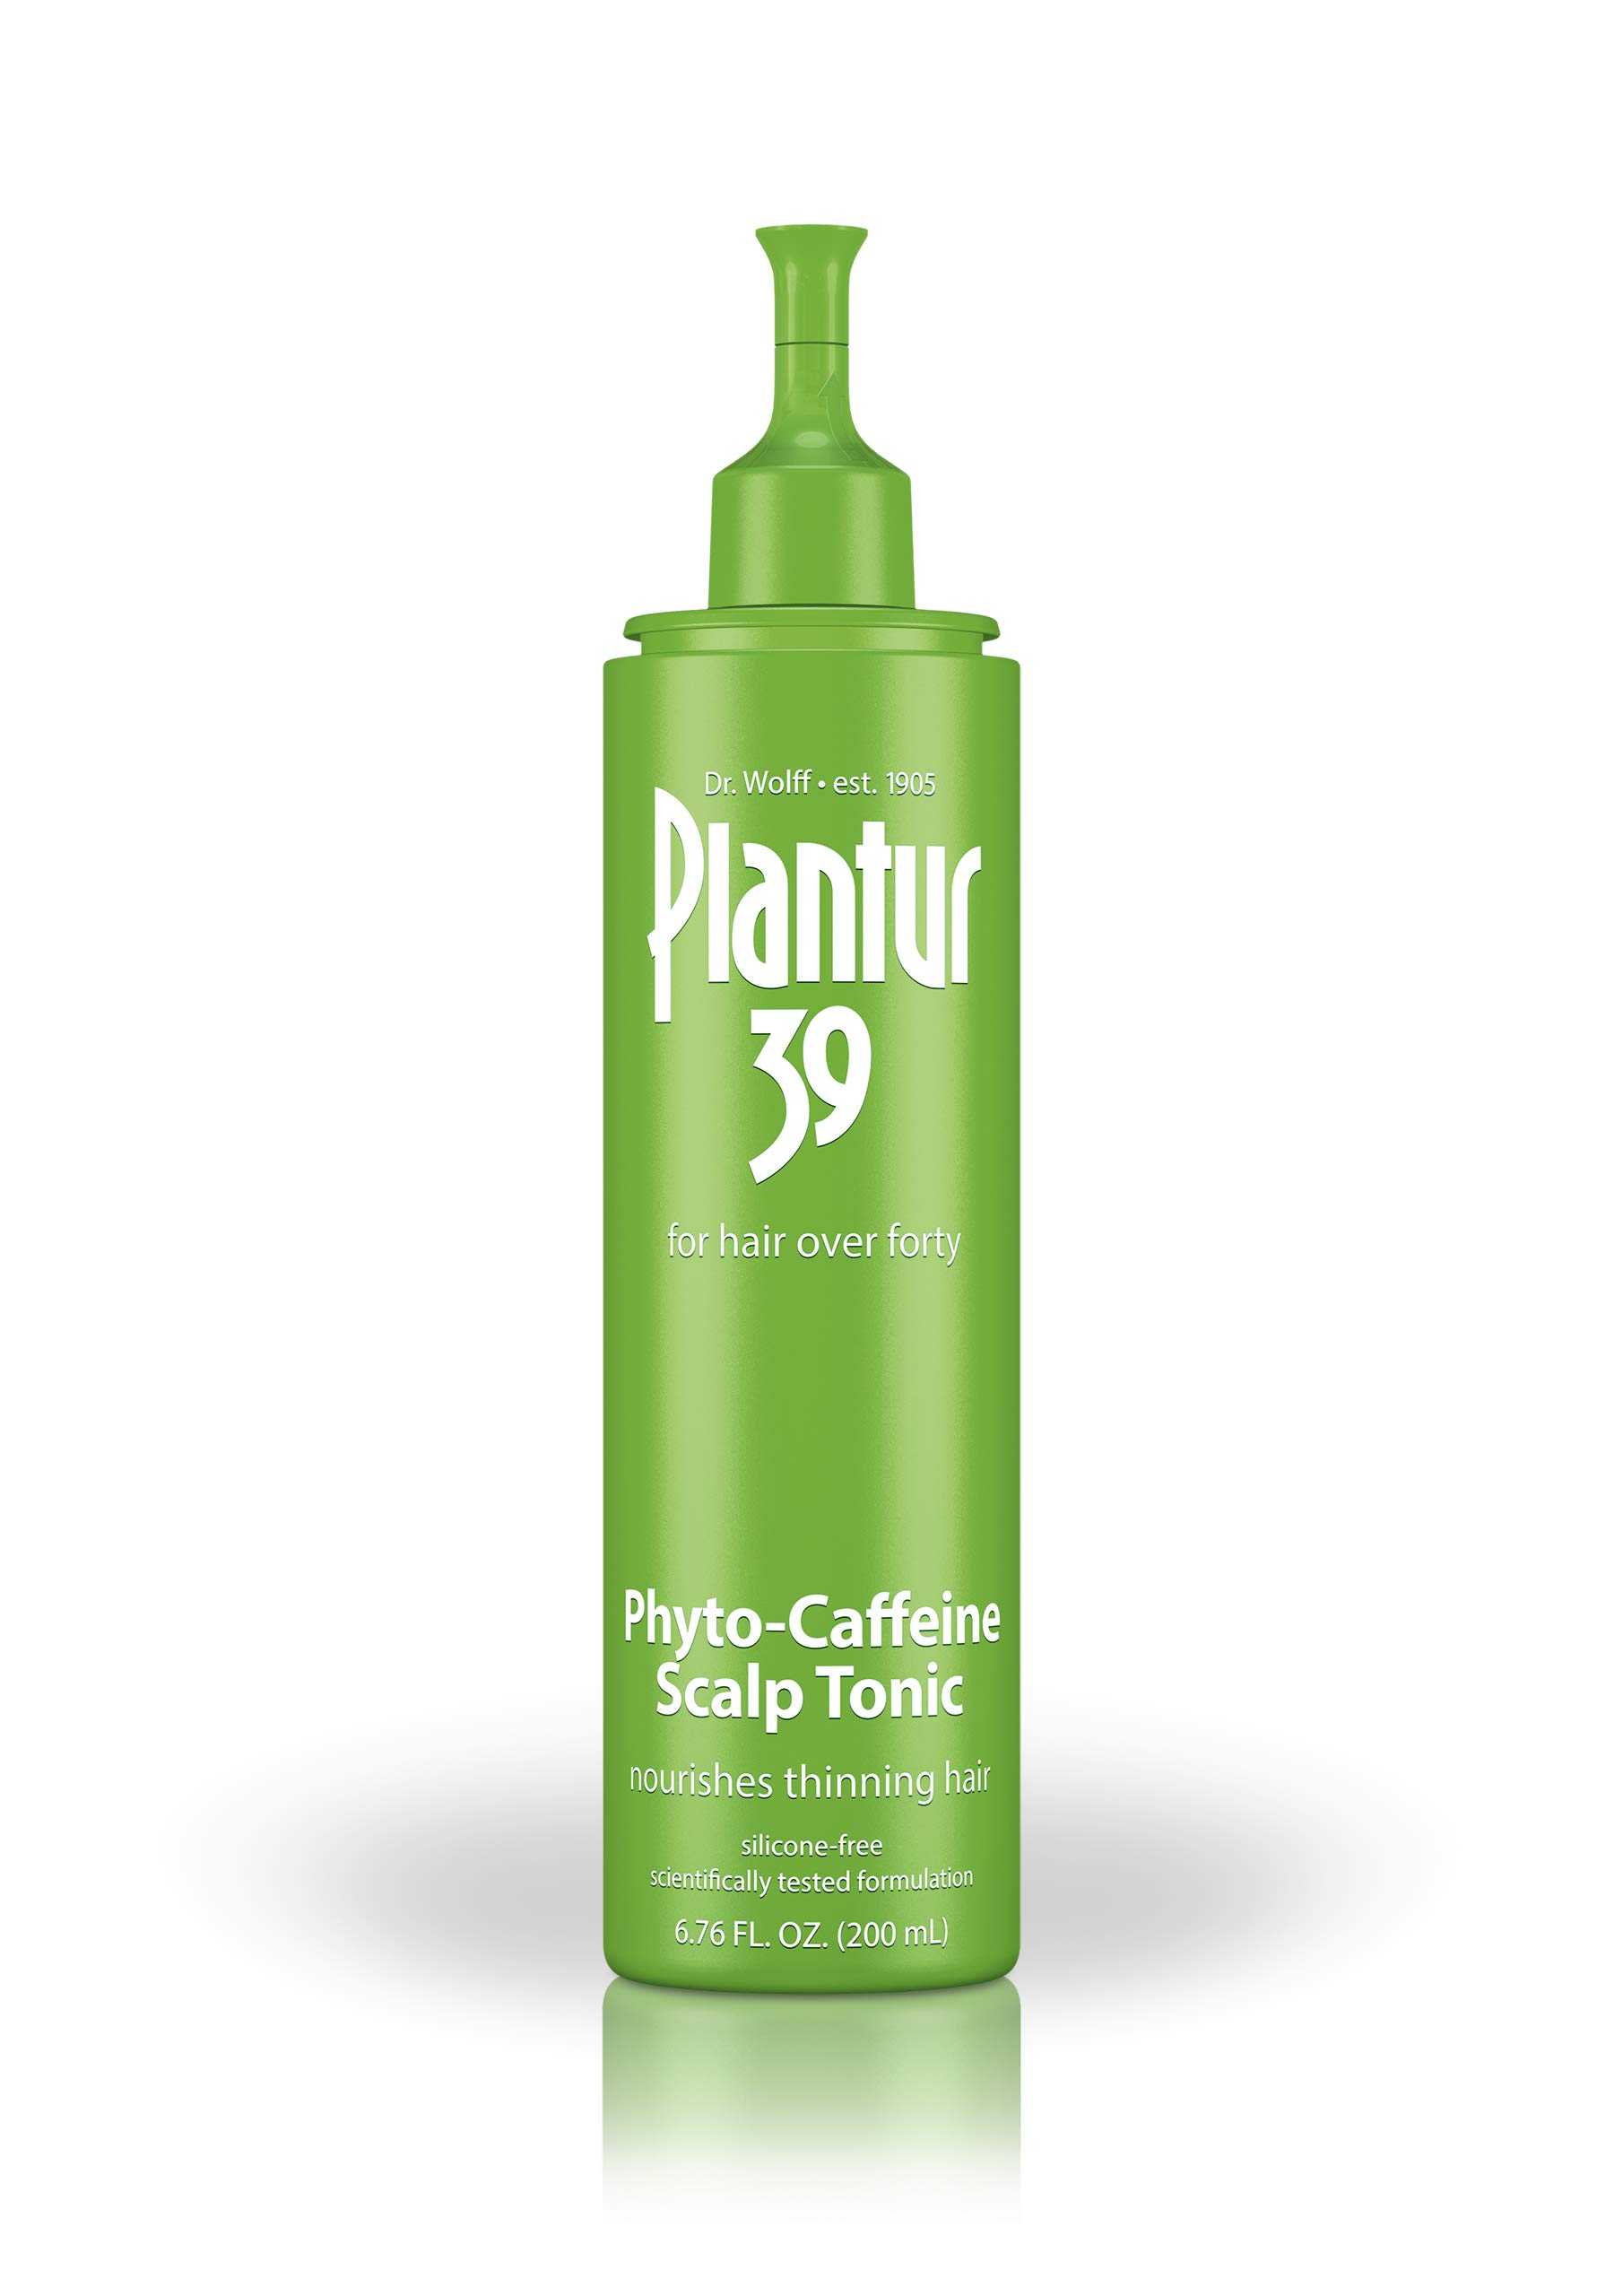 Plantur 39 Phyto Caffeine Scalp Tonic for Fine, Thinning Natural Hair Growth, Sulfate Free with Castor Oil, Niacin, Zinc